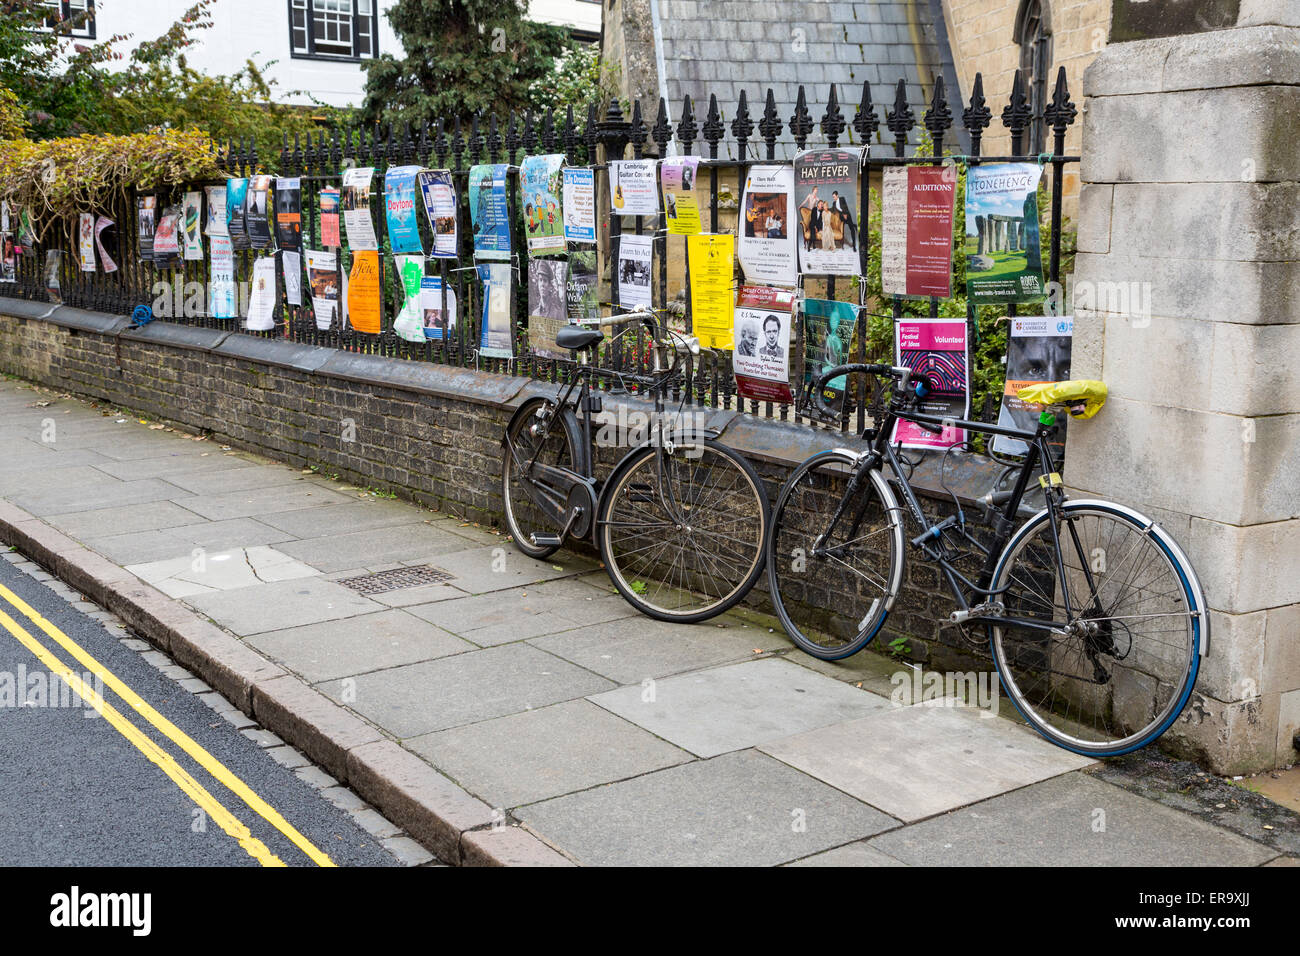 UK, England, Cambridge.  Posters and Advertisements along King's Parade. - Stock Image